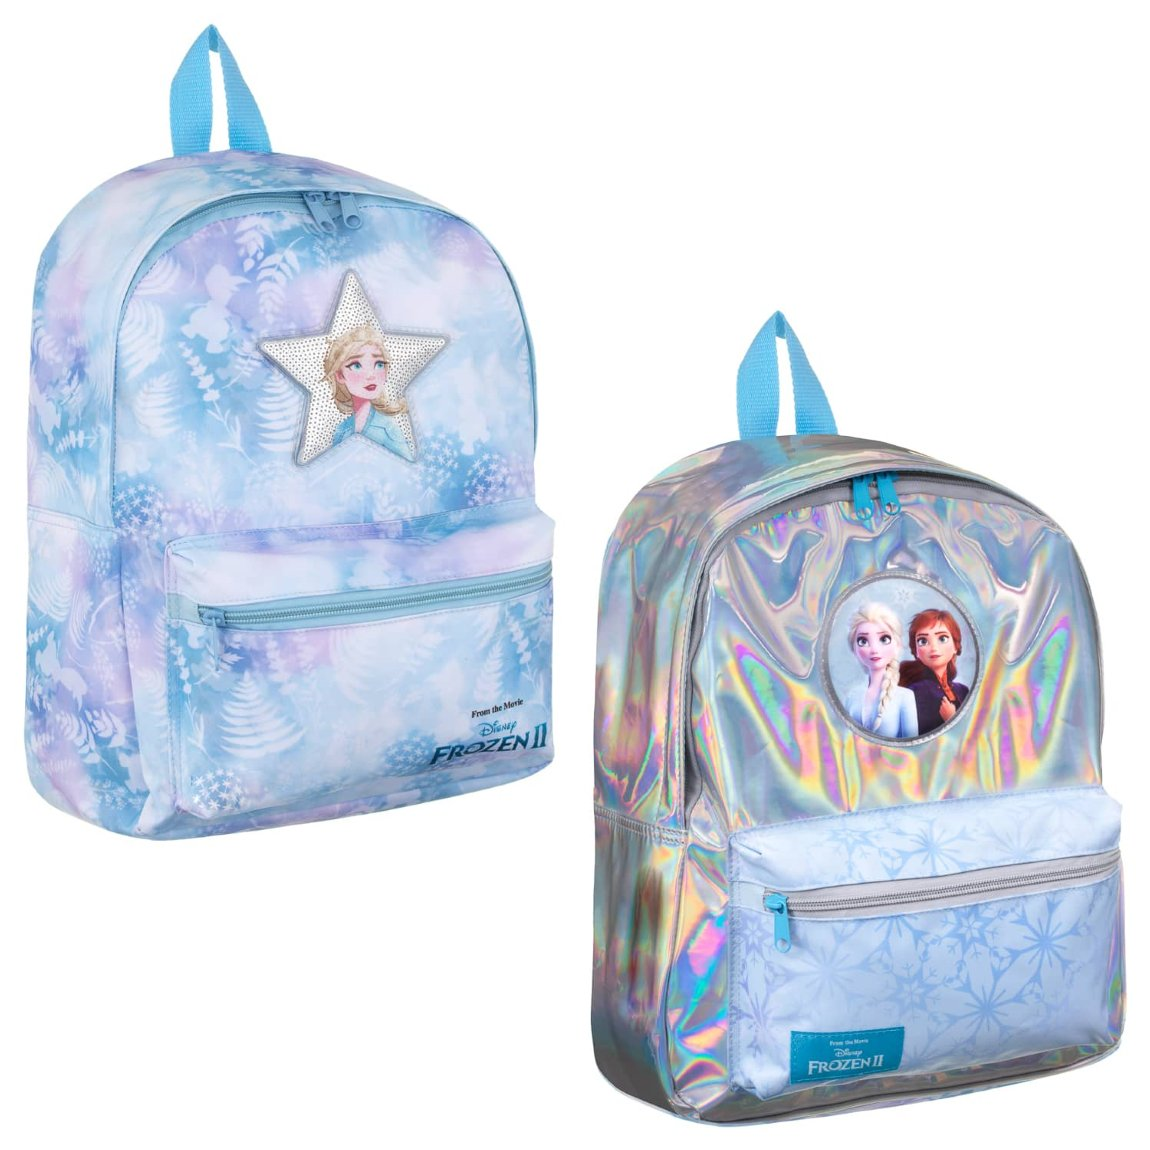 Frozen Backpack - Iridescent